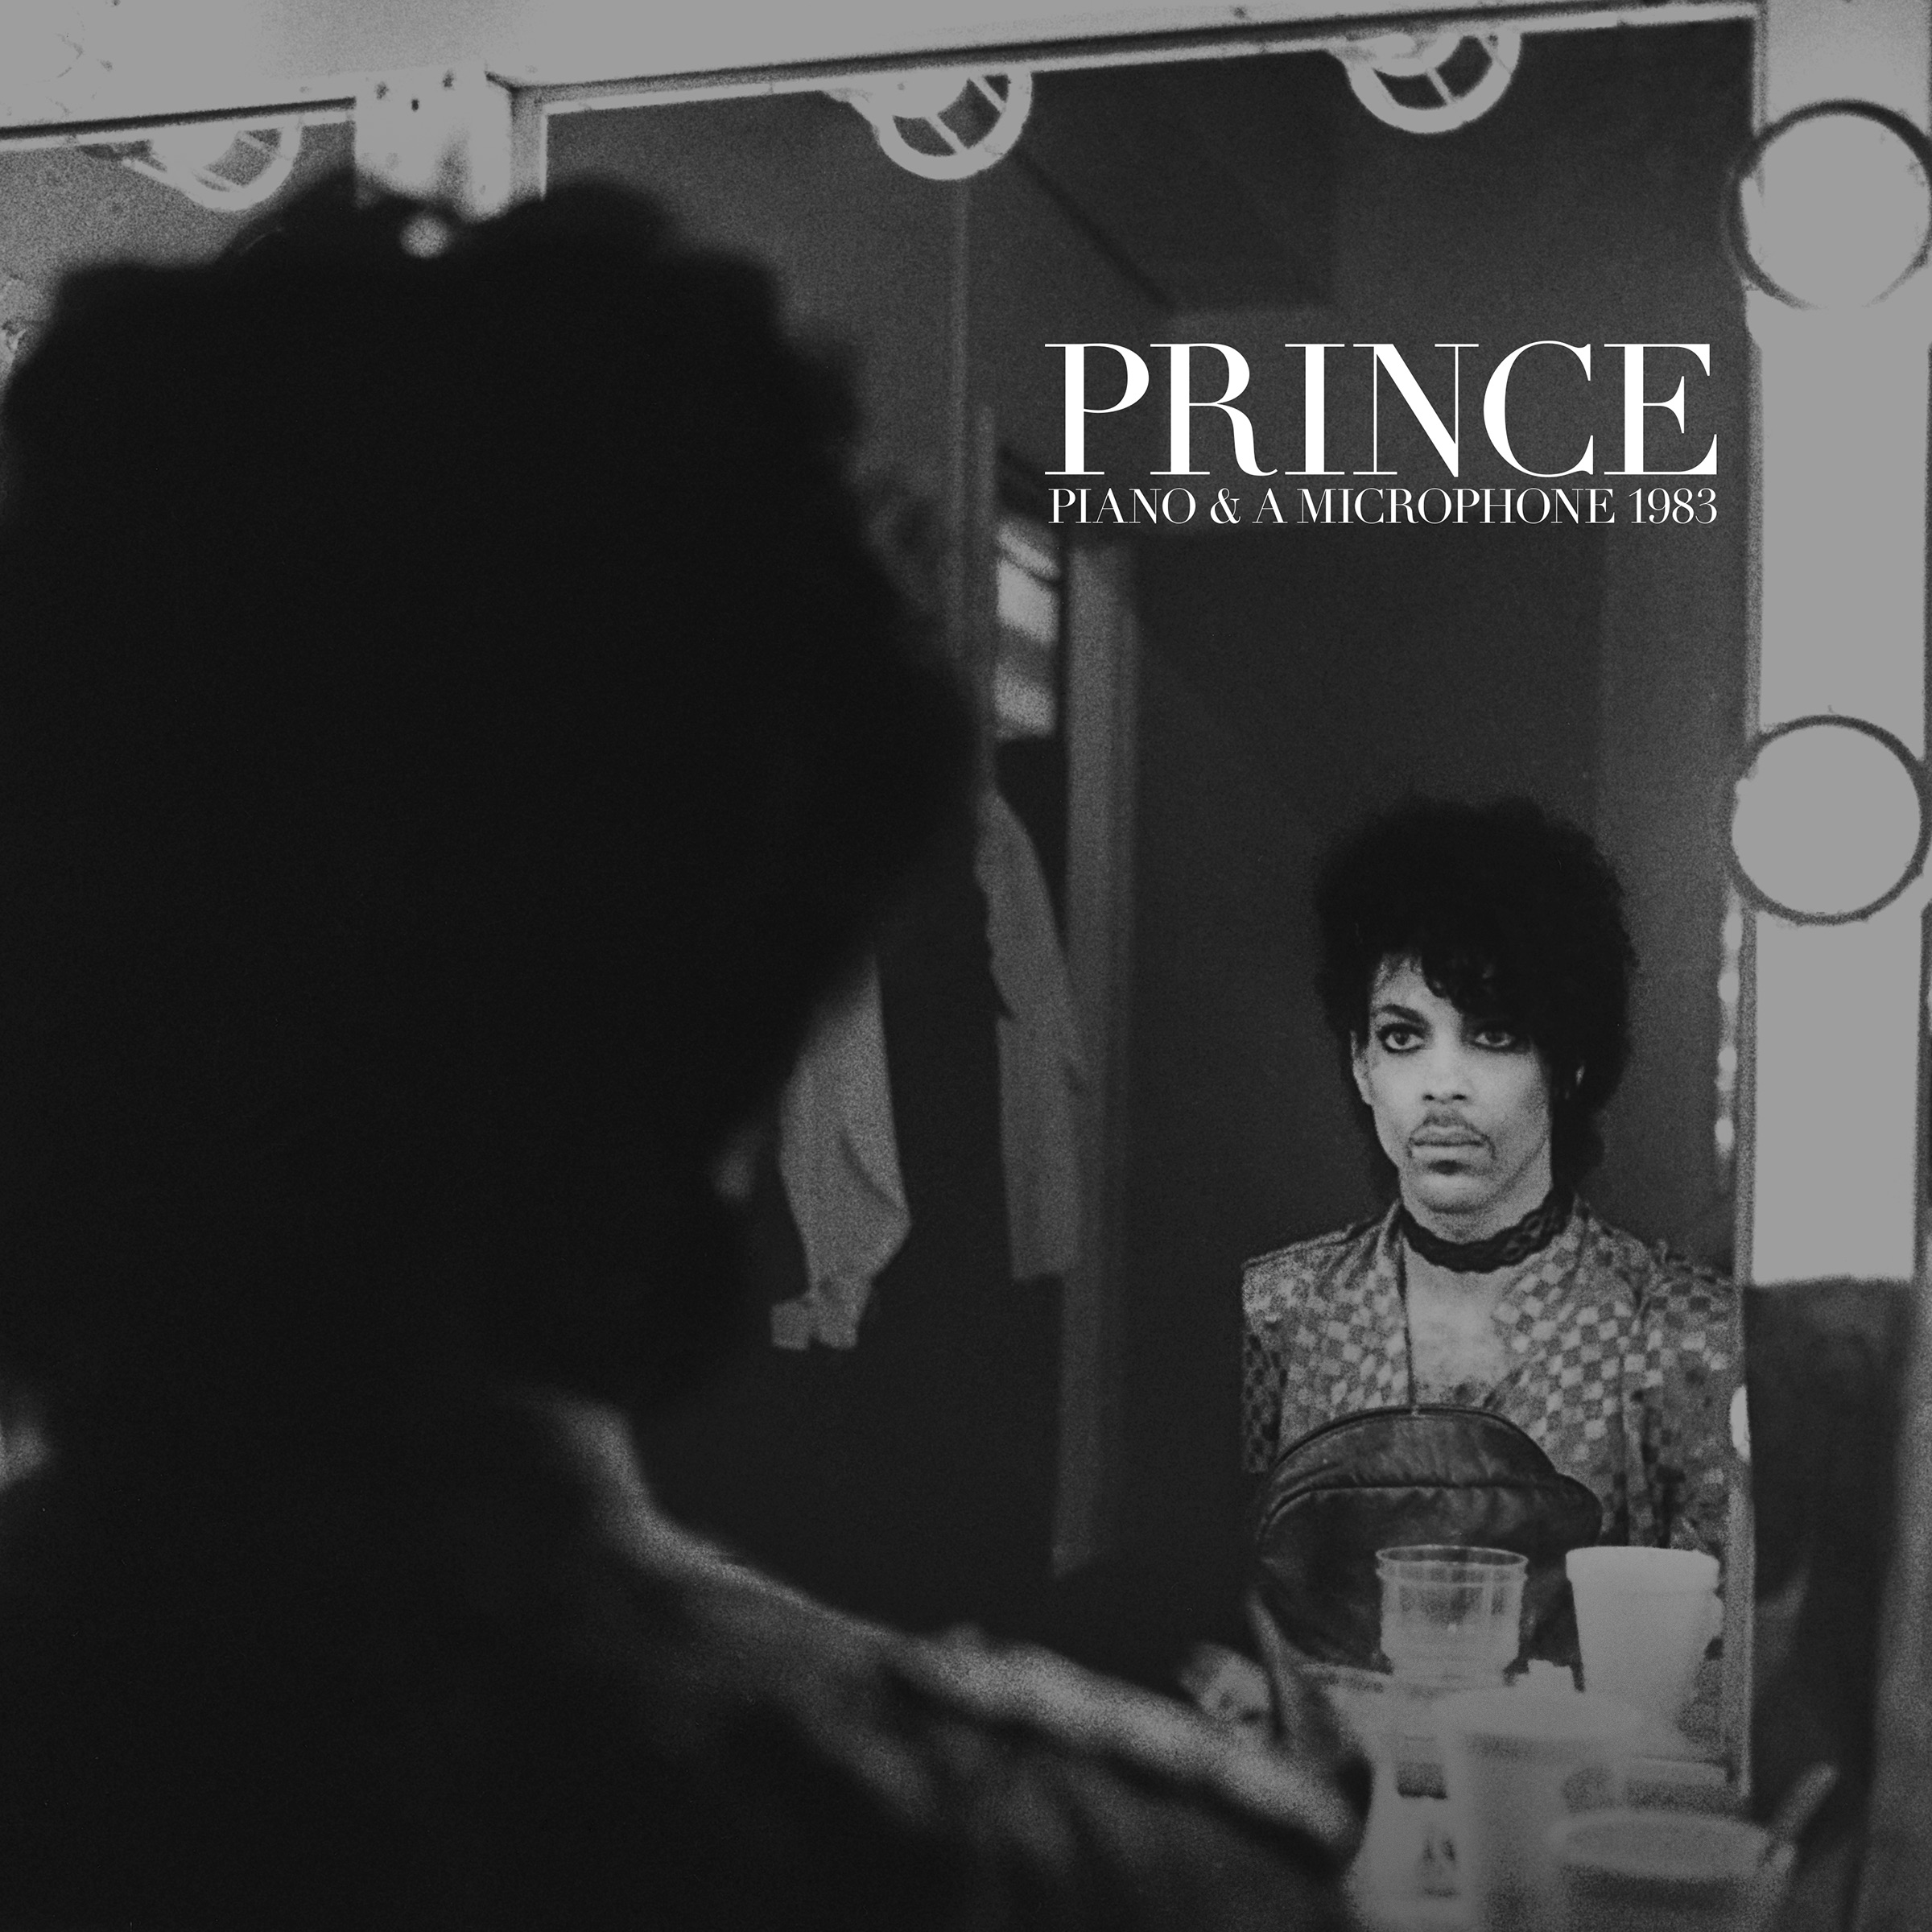 Prince Piano & A Microphone 1983 album cover art artwork black and white mirror